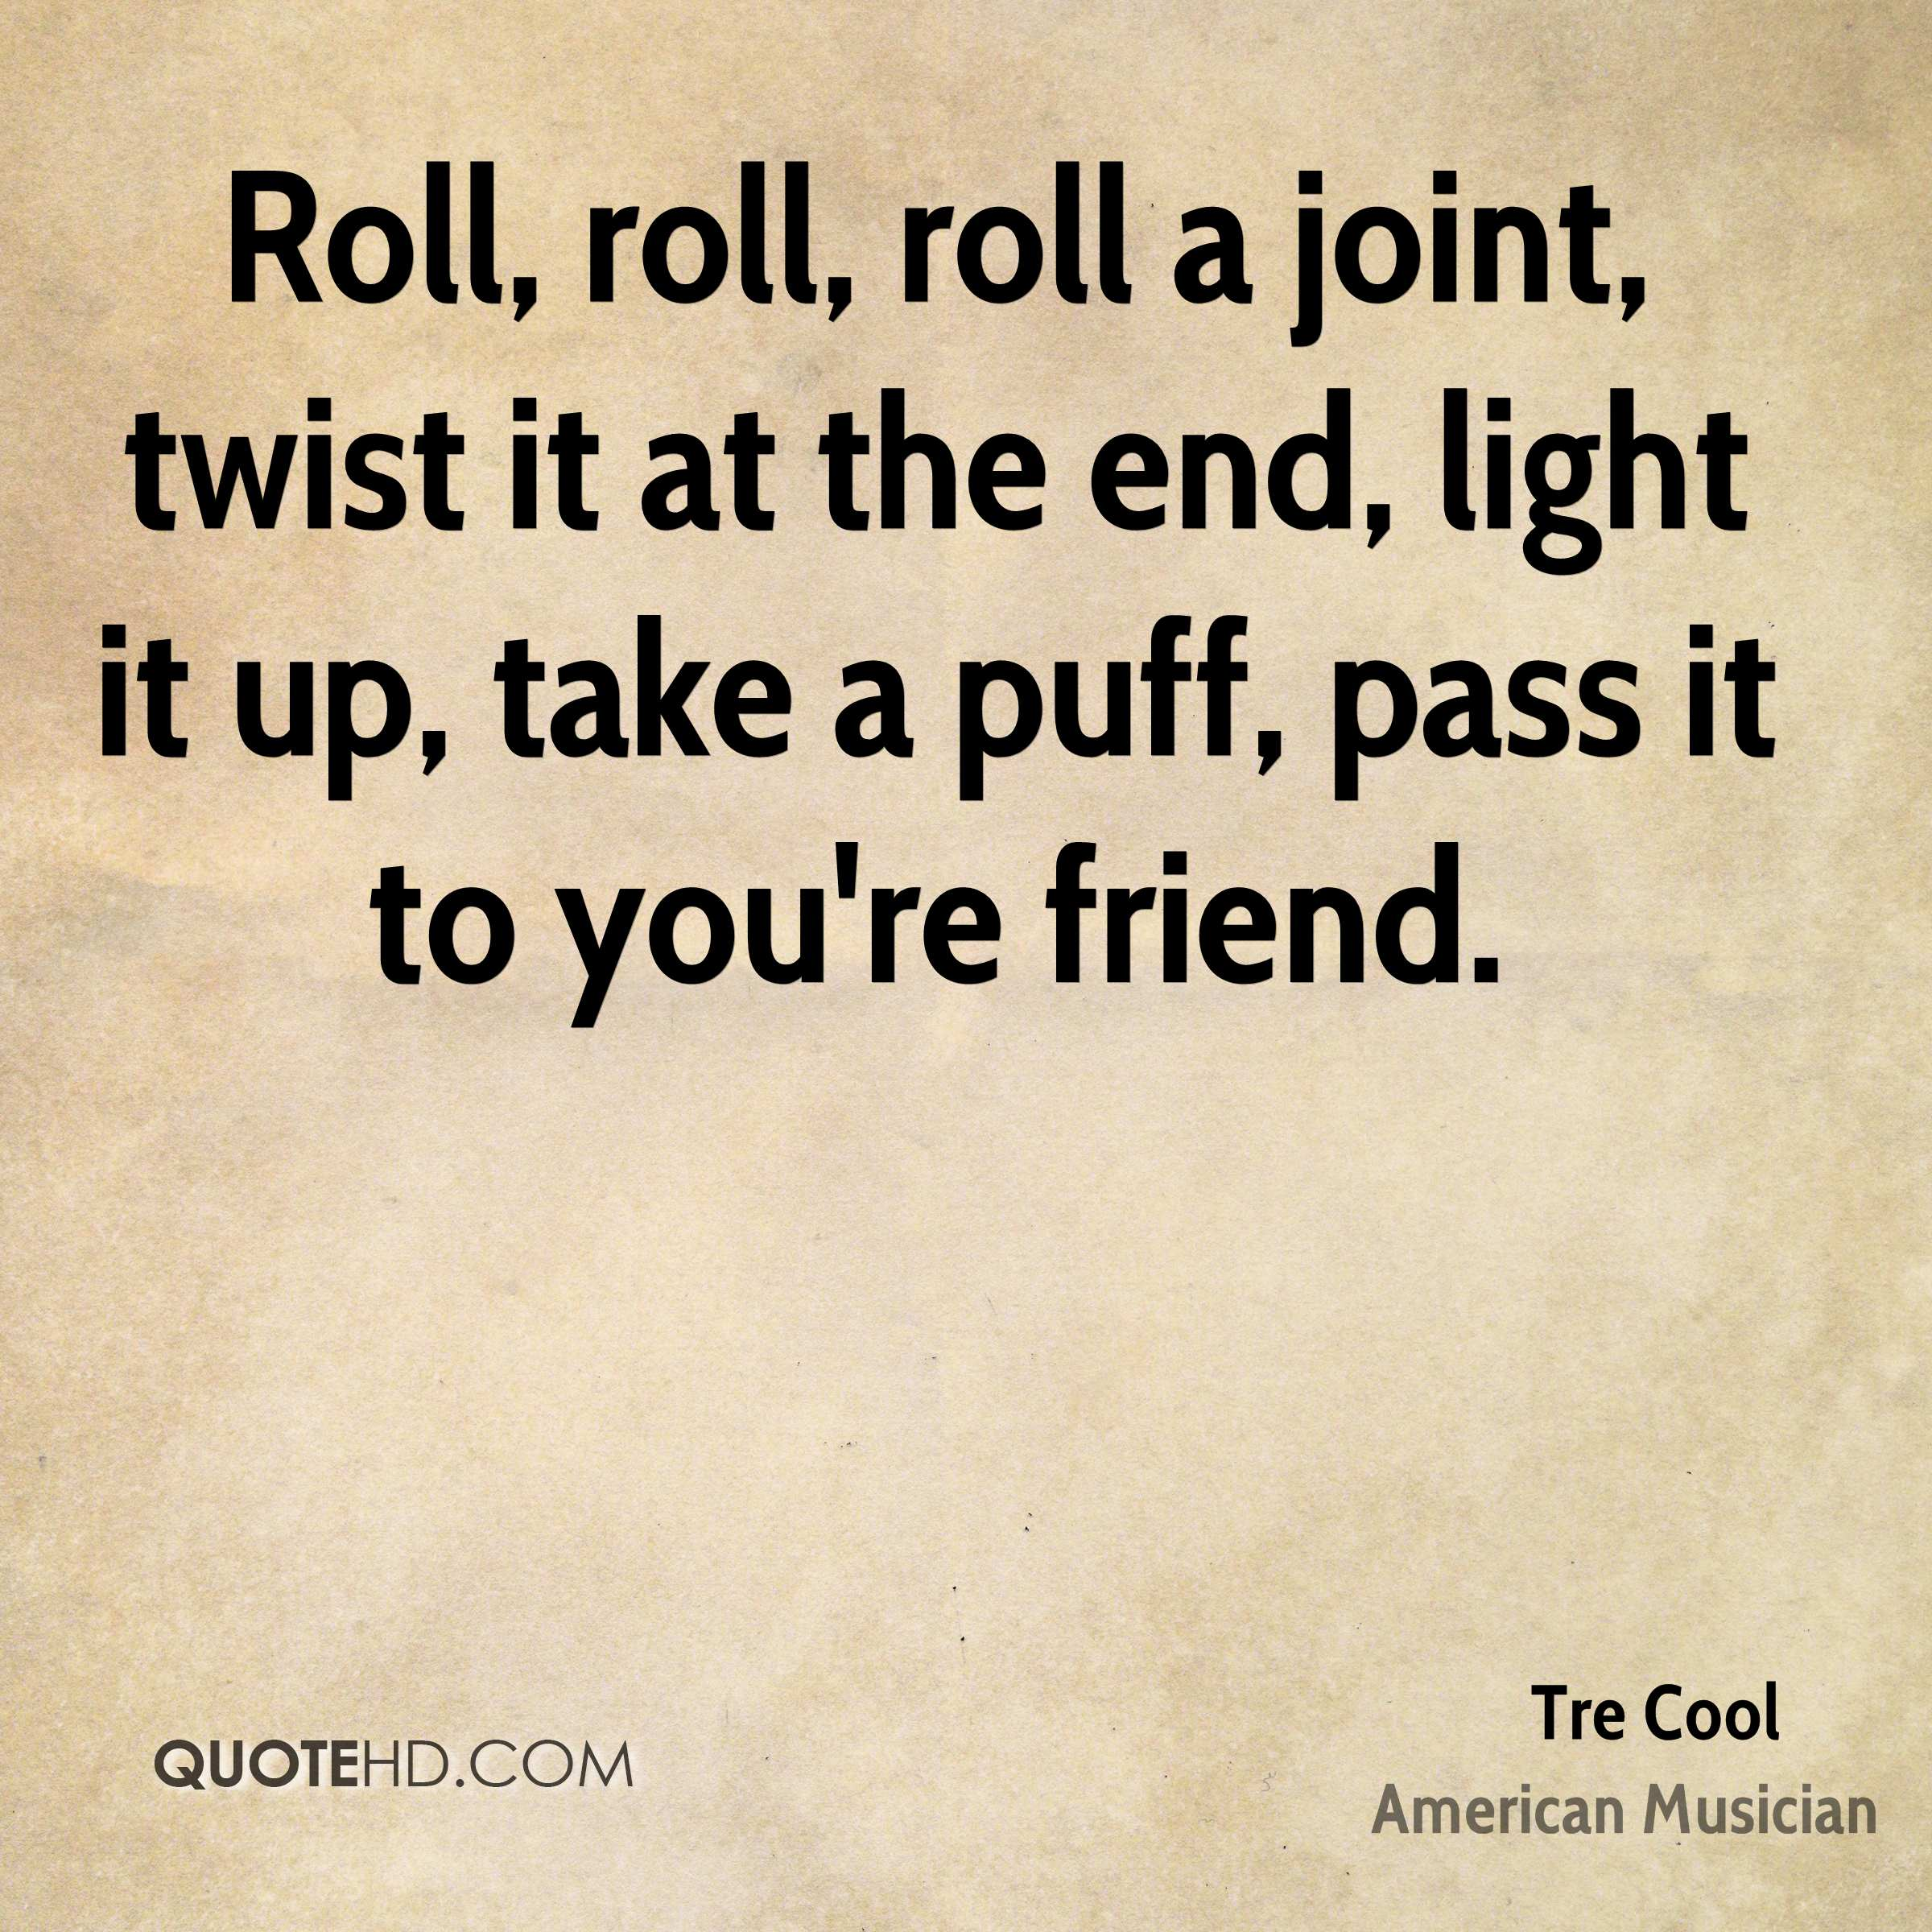 Roll, roll, roll a joint, twist it at the end, light it up, take a puff, pass it to you're friend.